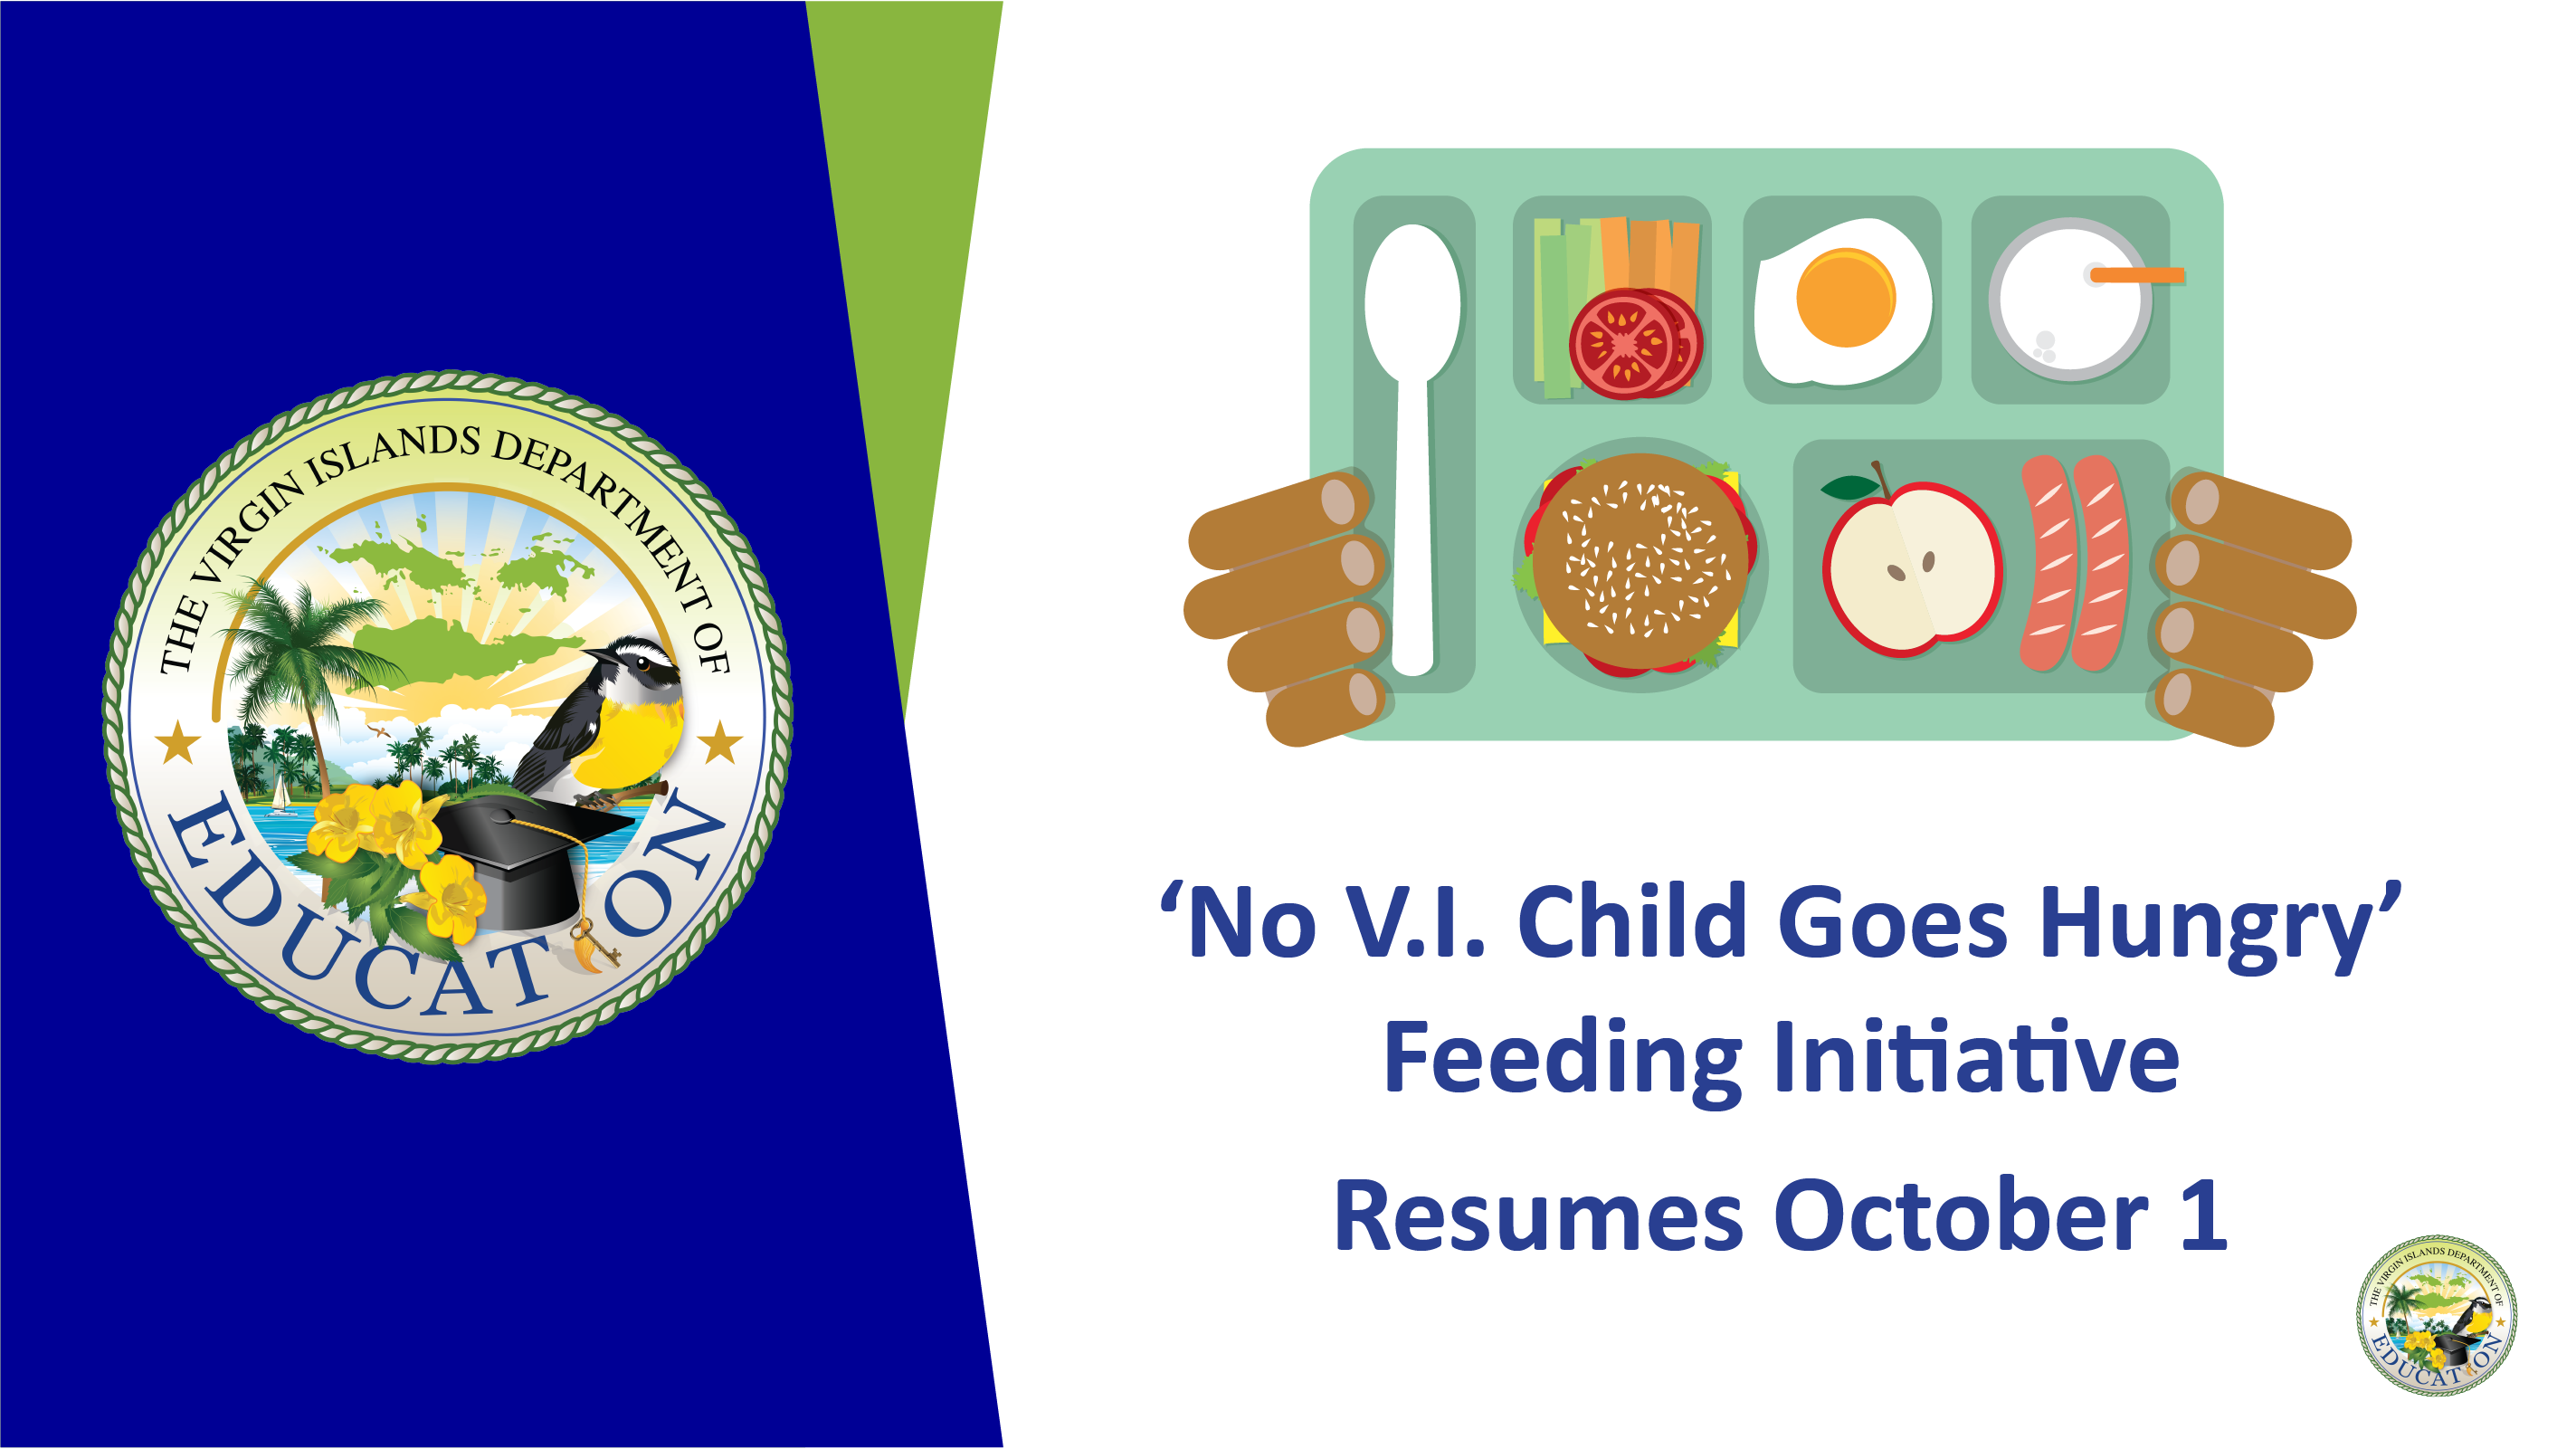 'No V.I. Child Goes Hungry' Feeding Initiative Resumes October 1